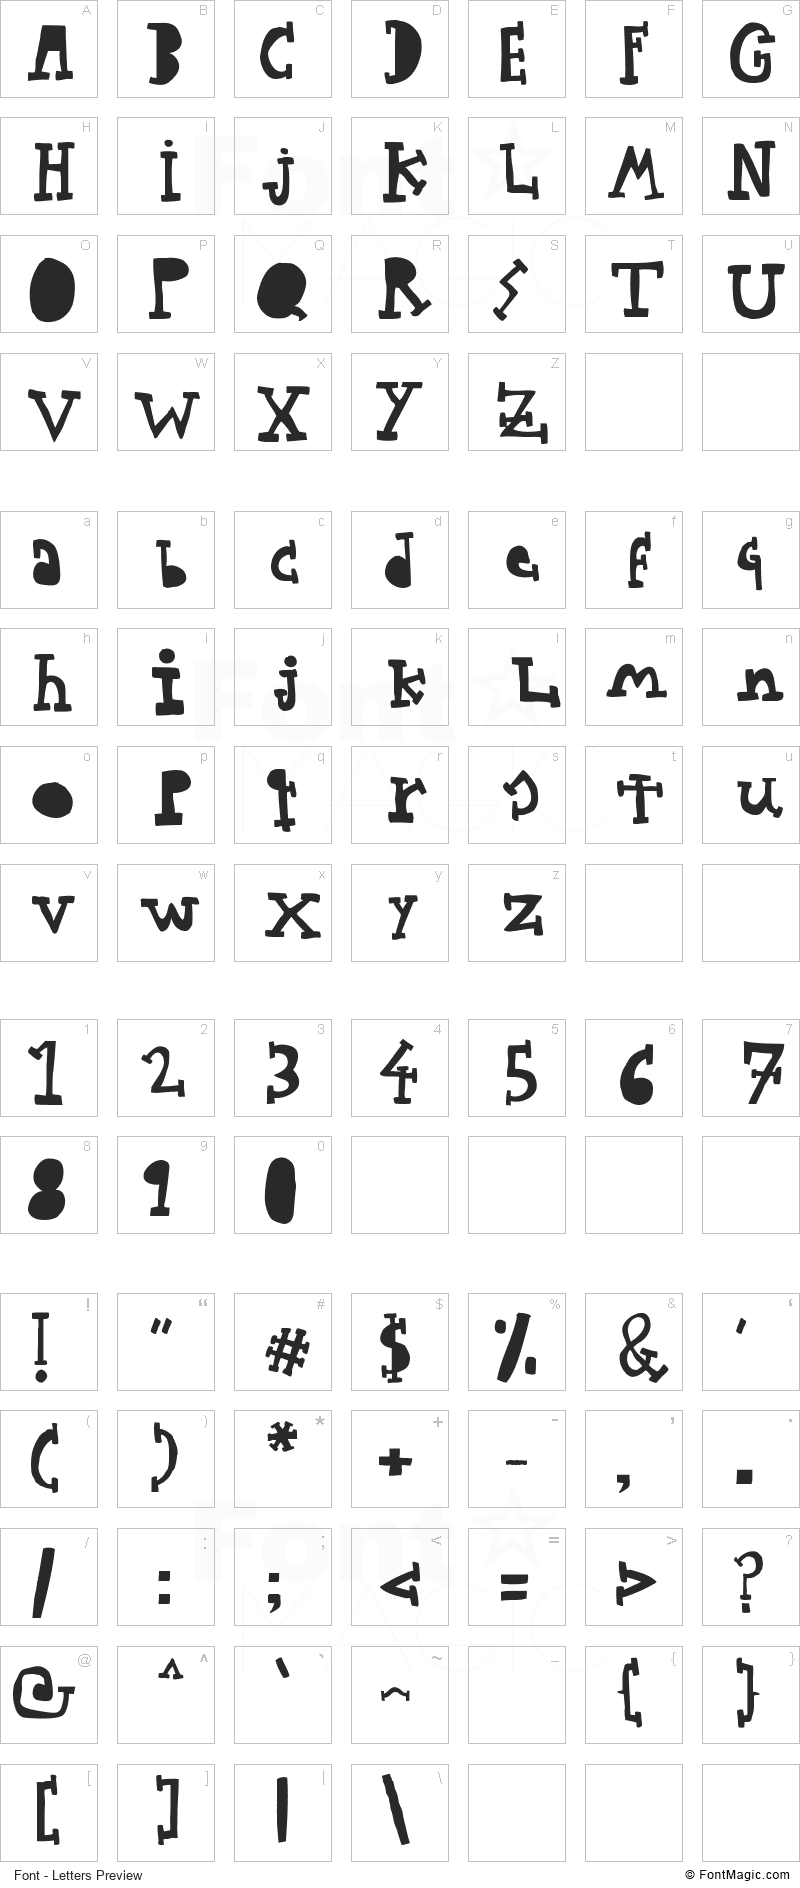 Woodcutter Typewritter Font - All Latters Preview Chart